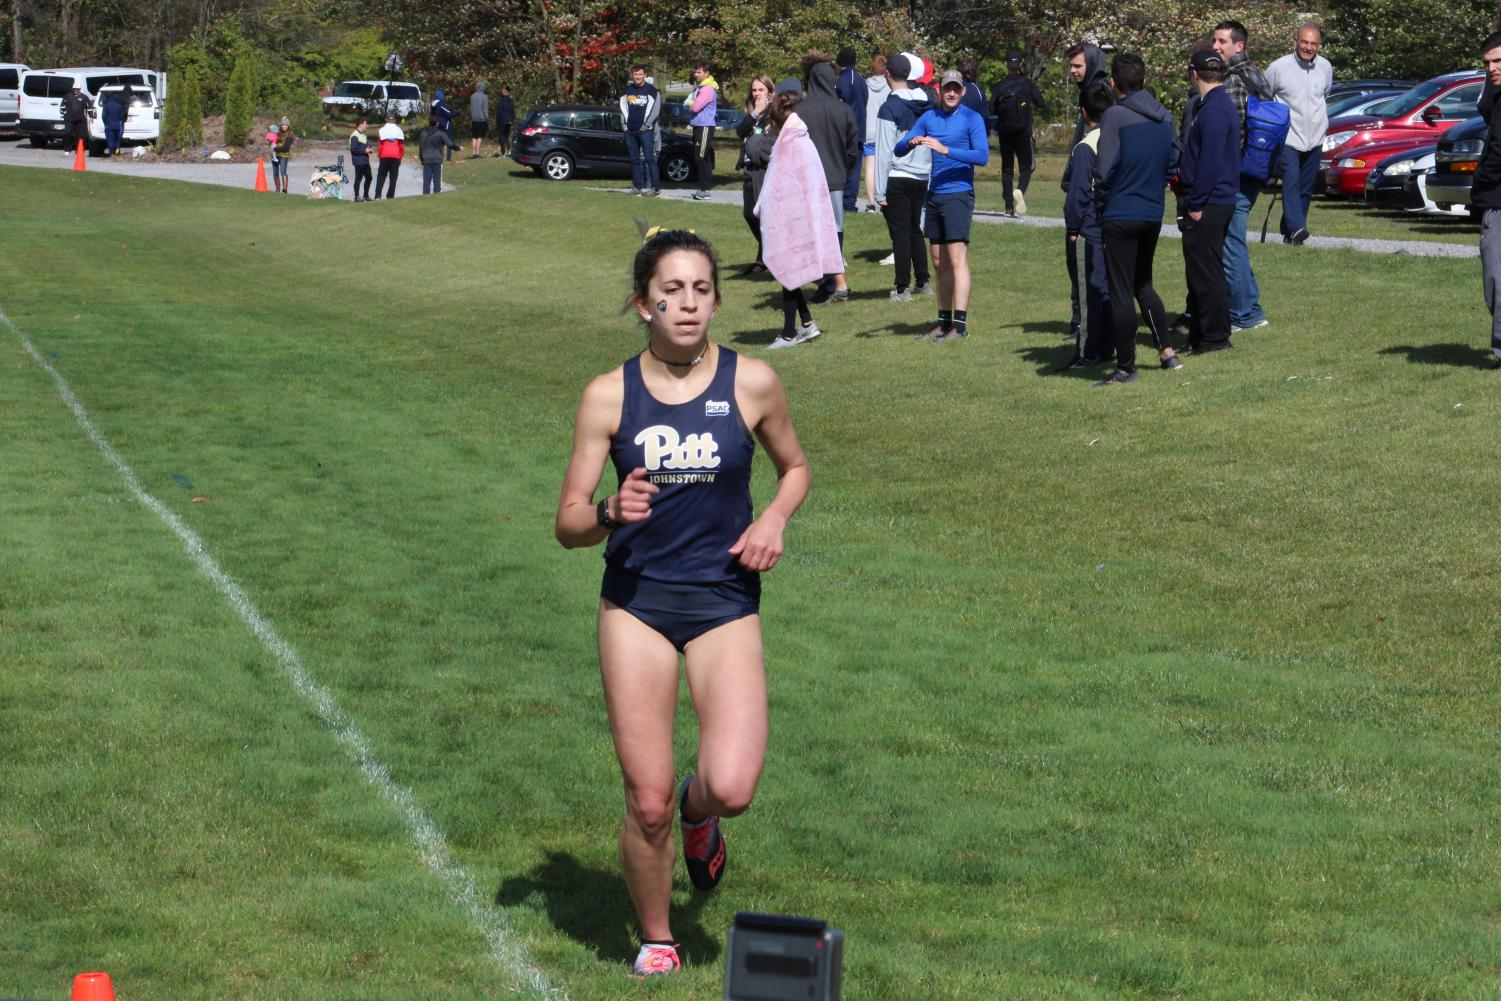 Pitt-Johnstown's women cross-country junior Samantha Kluz finished her four-mile run and led the women's cross-country team to second place Oct. 5 in the Pitt-Johnstown University invitational at the Pitt-Johnstown's cross-country trail.